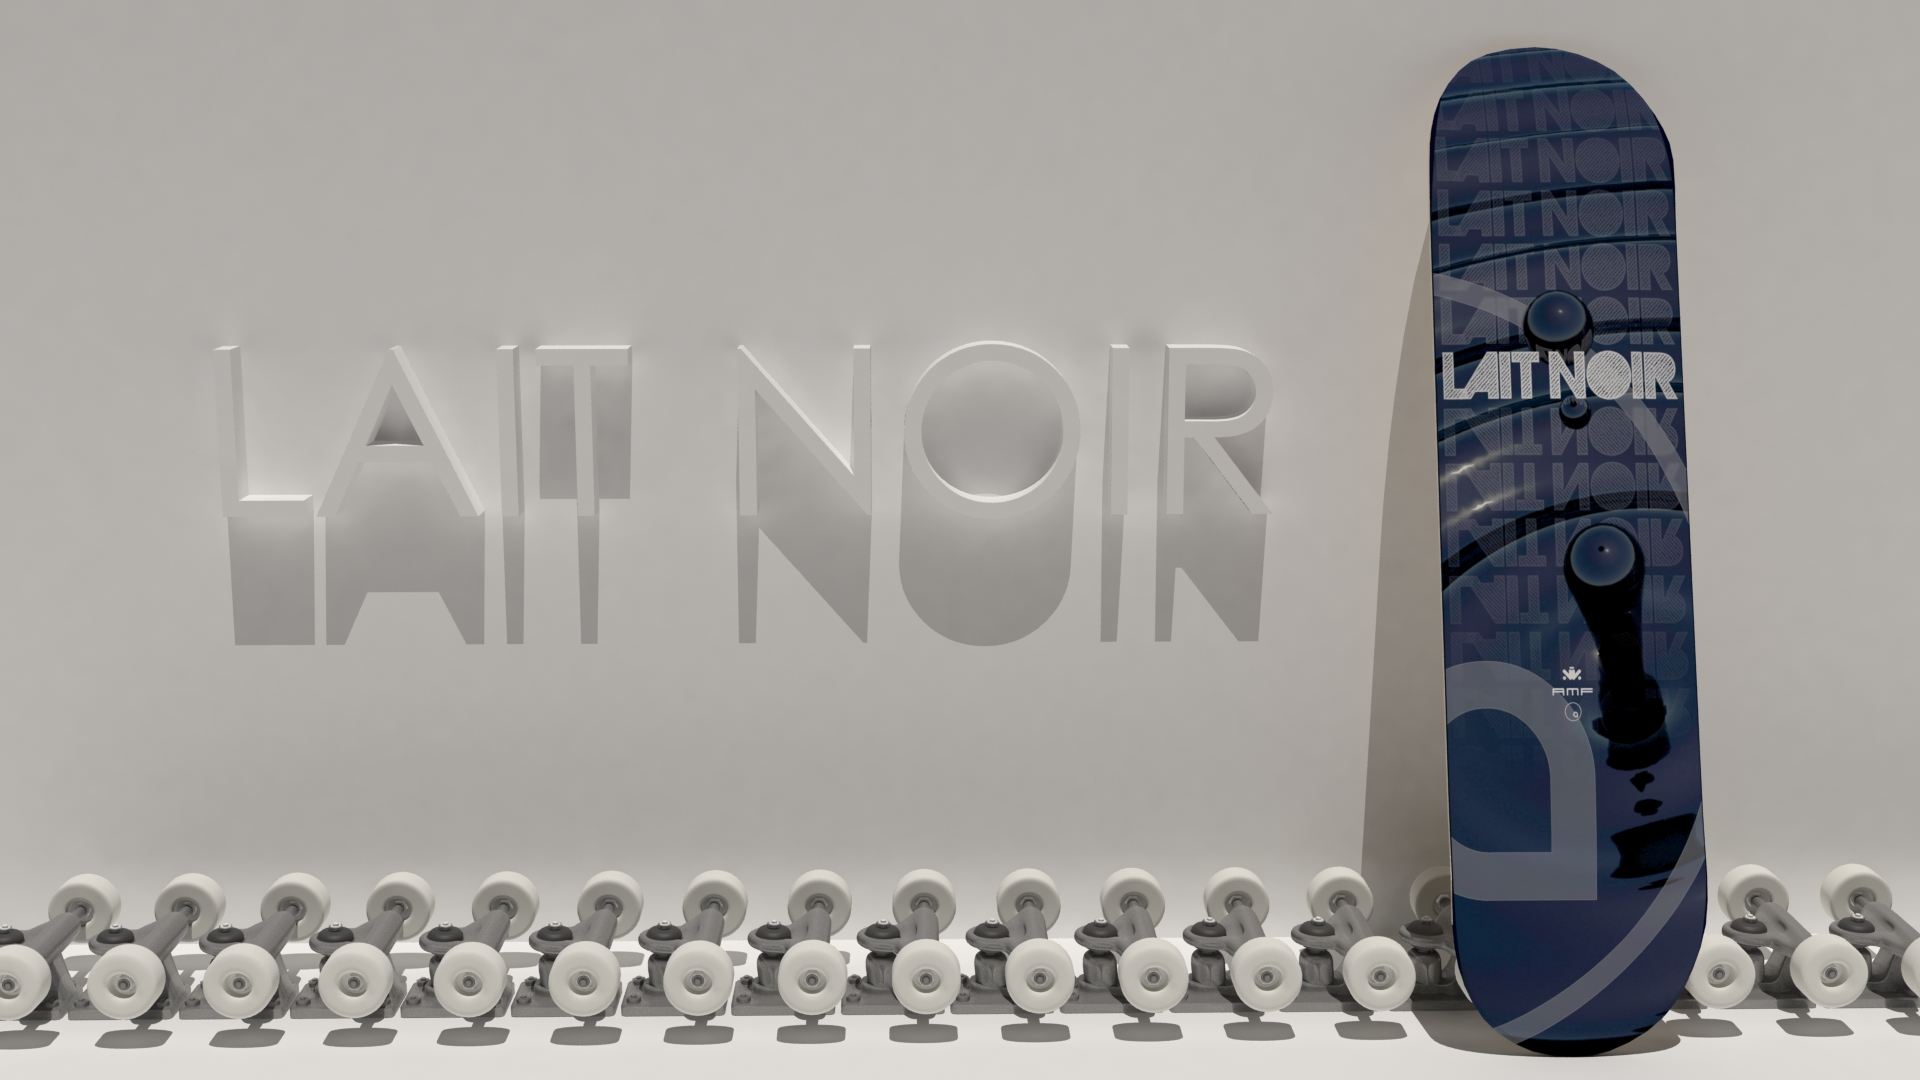 Lait Noir - Board Display